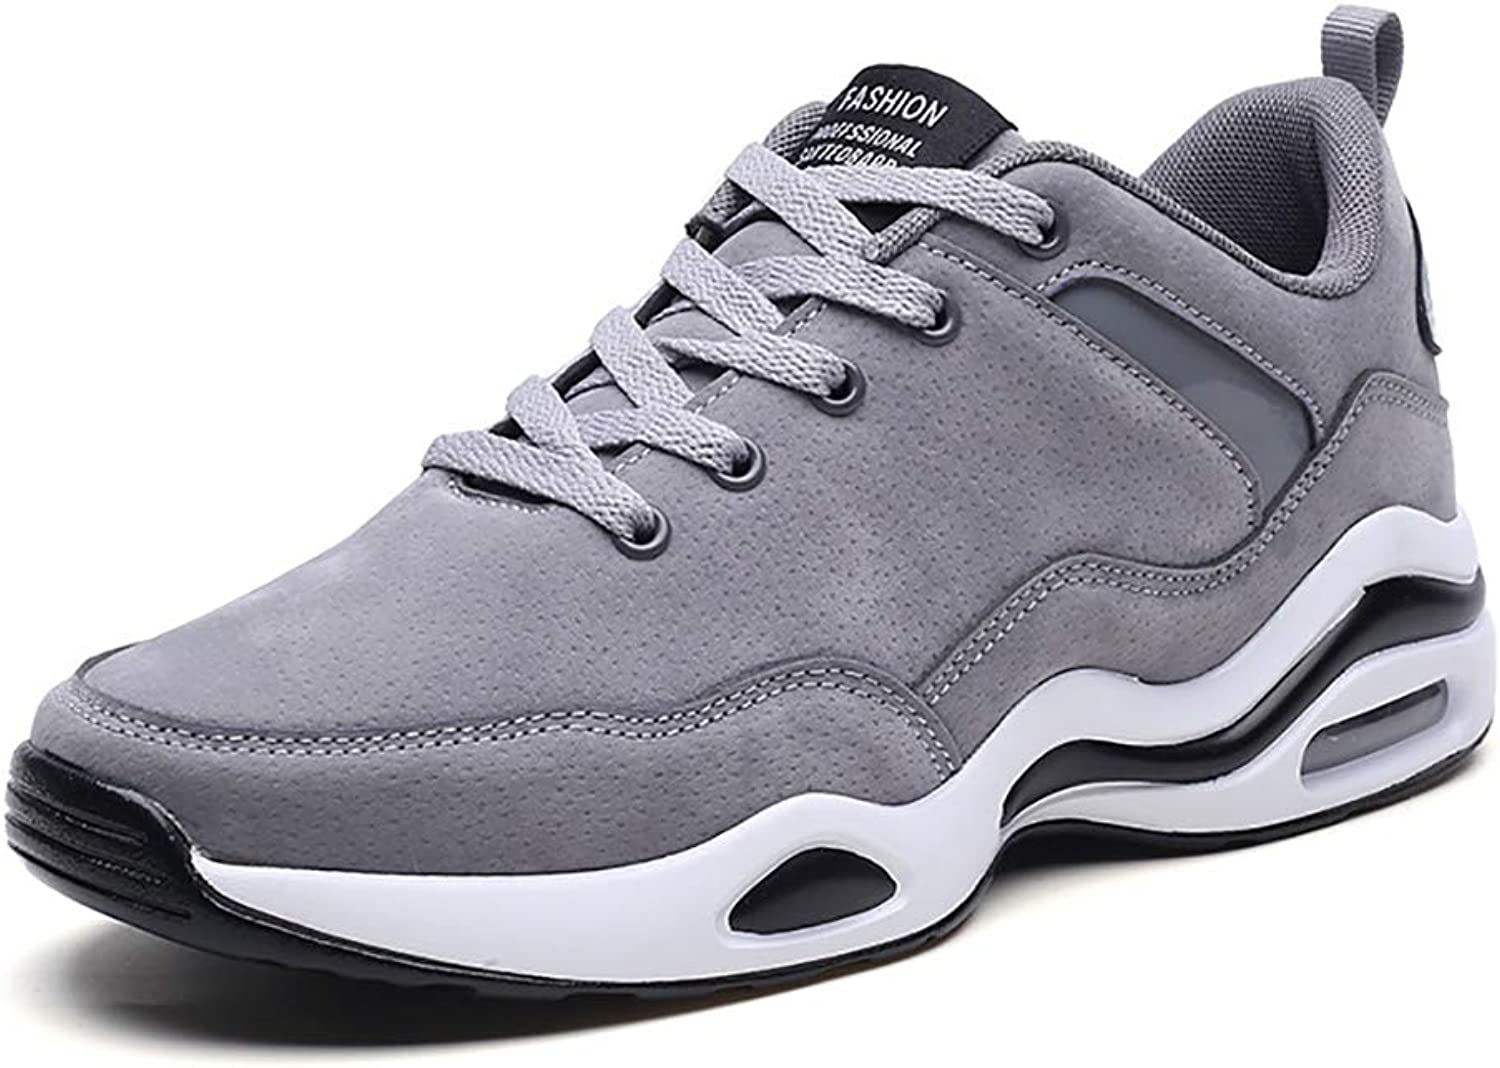 Men's Sports shoes, Casual shoes Running shoes Solid color Low to Help Md Sole 39-44 Breathable, Lightweight, Wear-Resistant